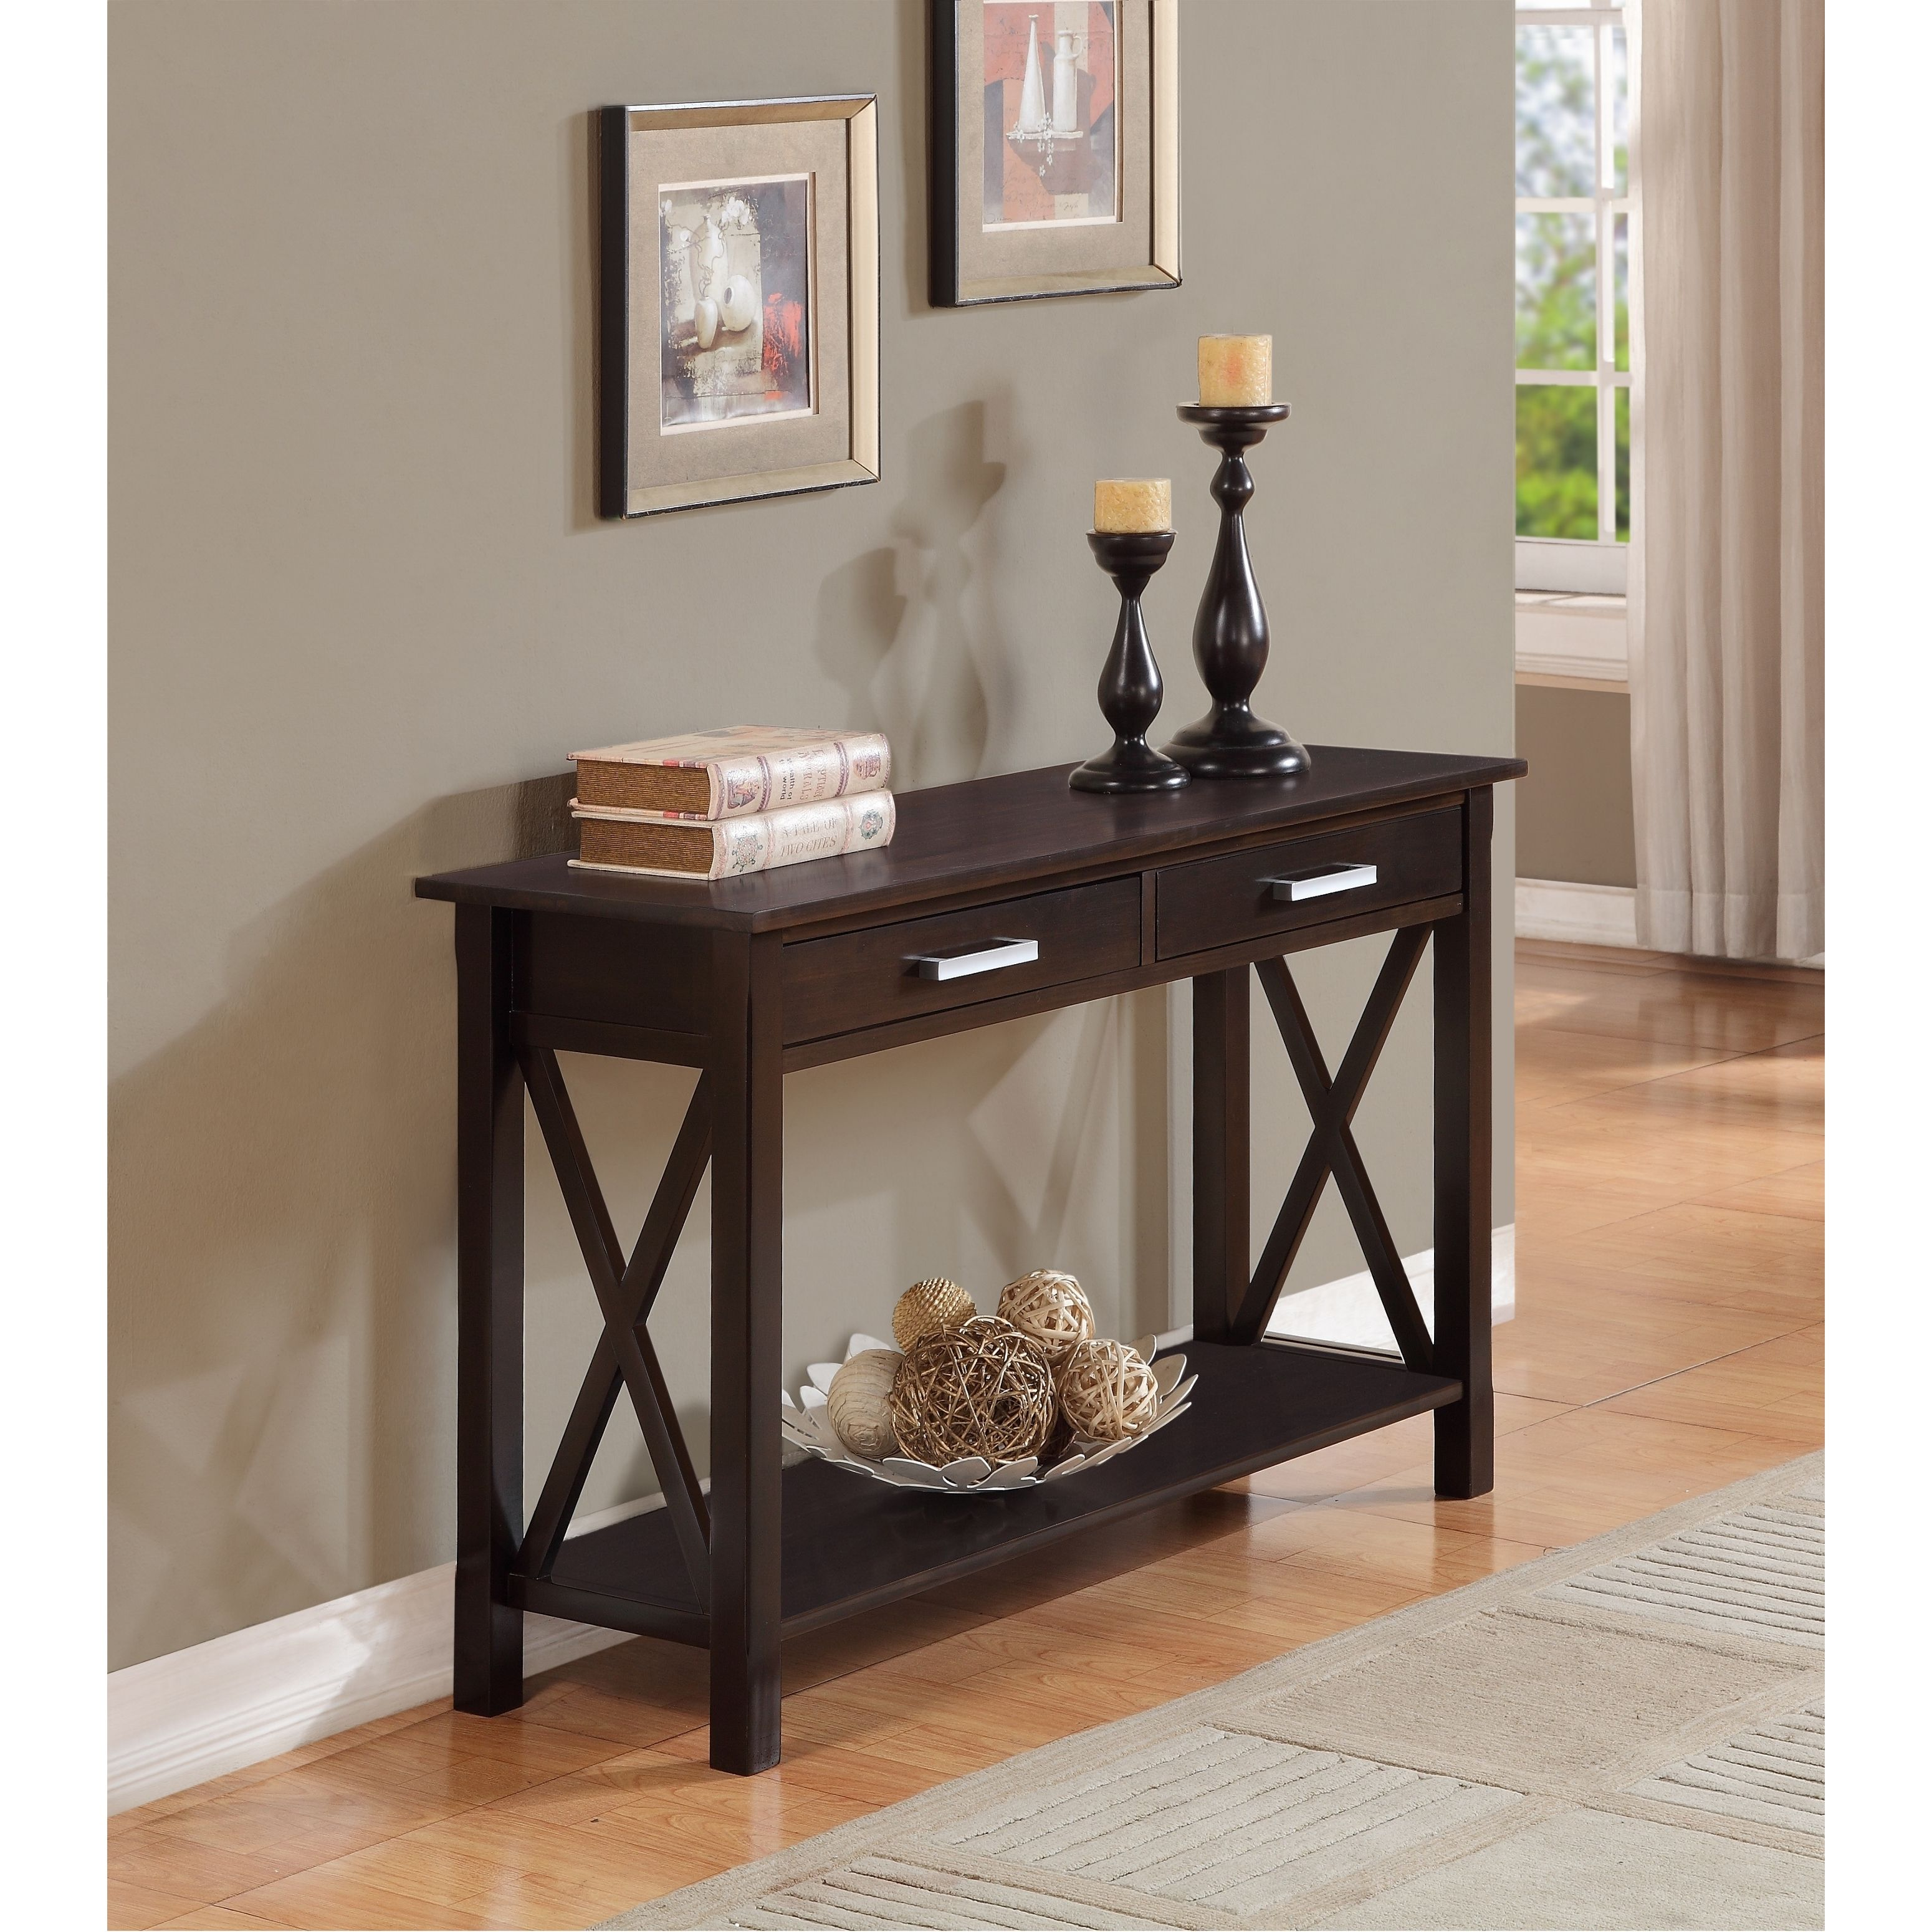 This Handsome Waterloo Console Table Is Both Elegant And